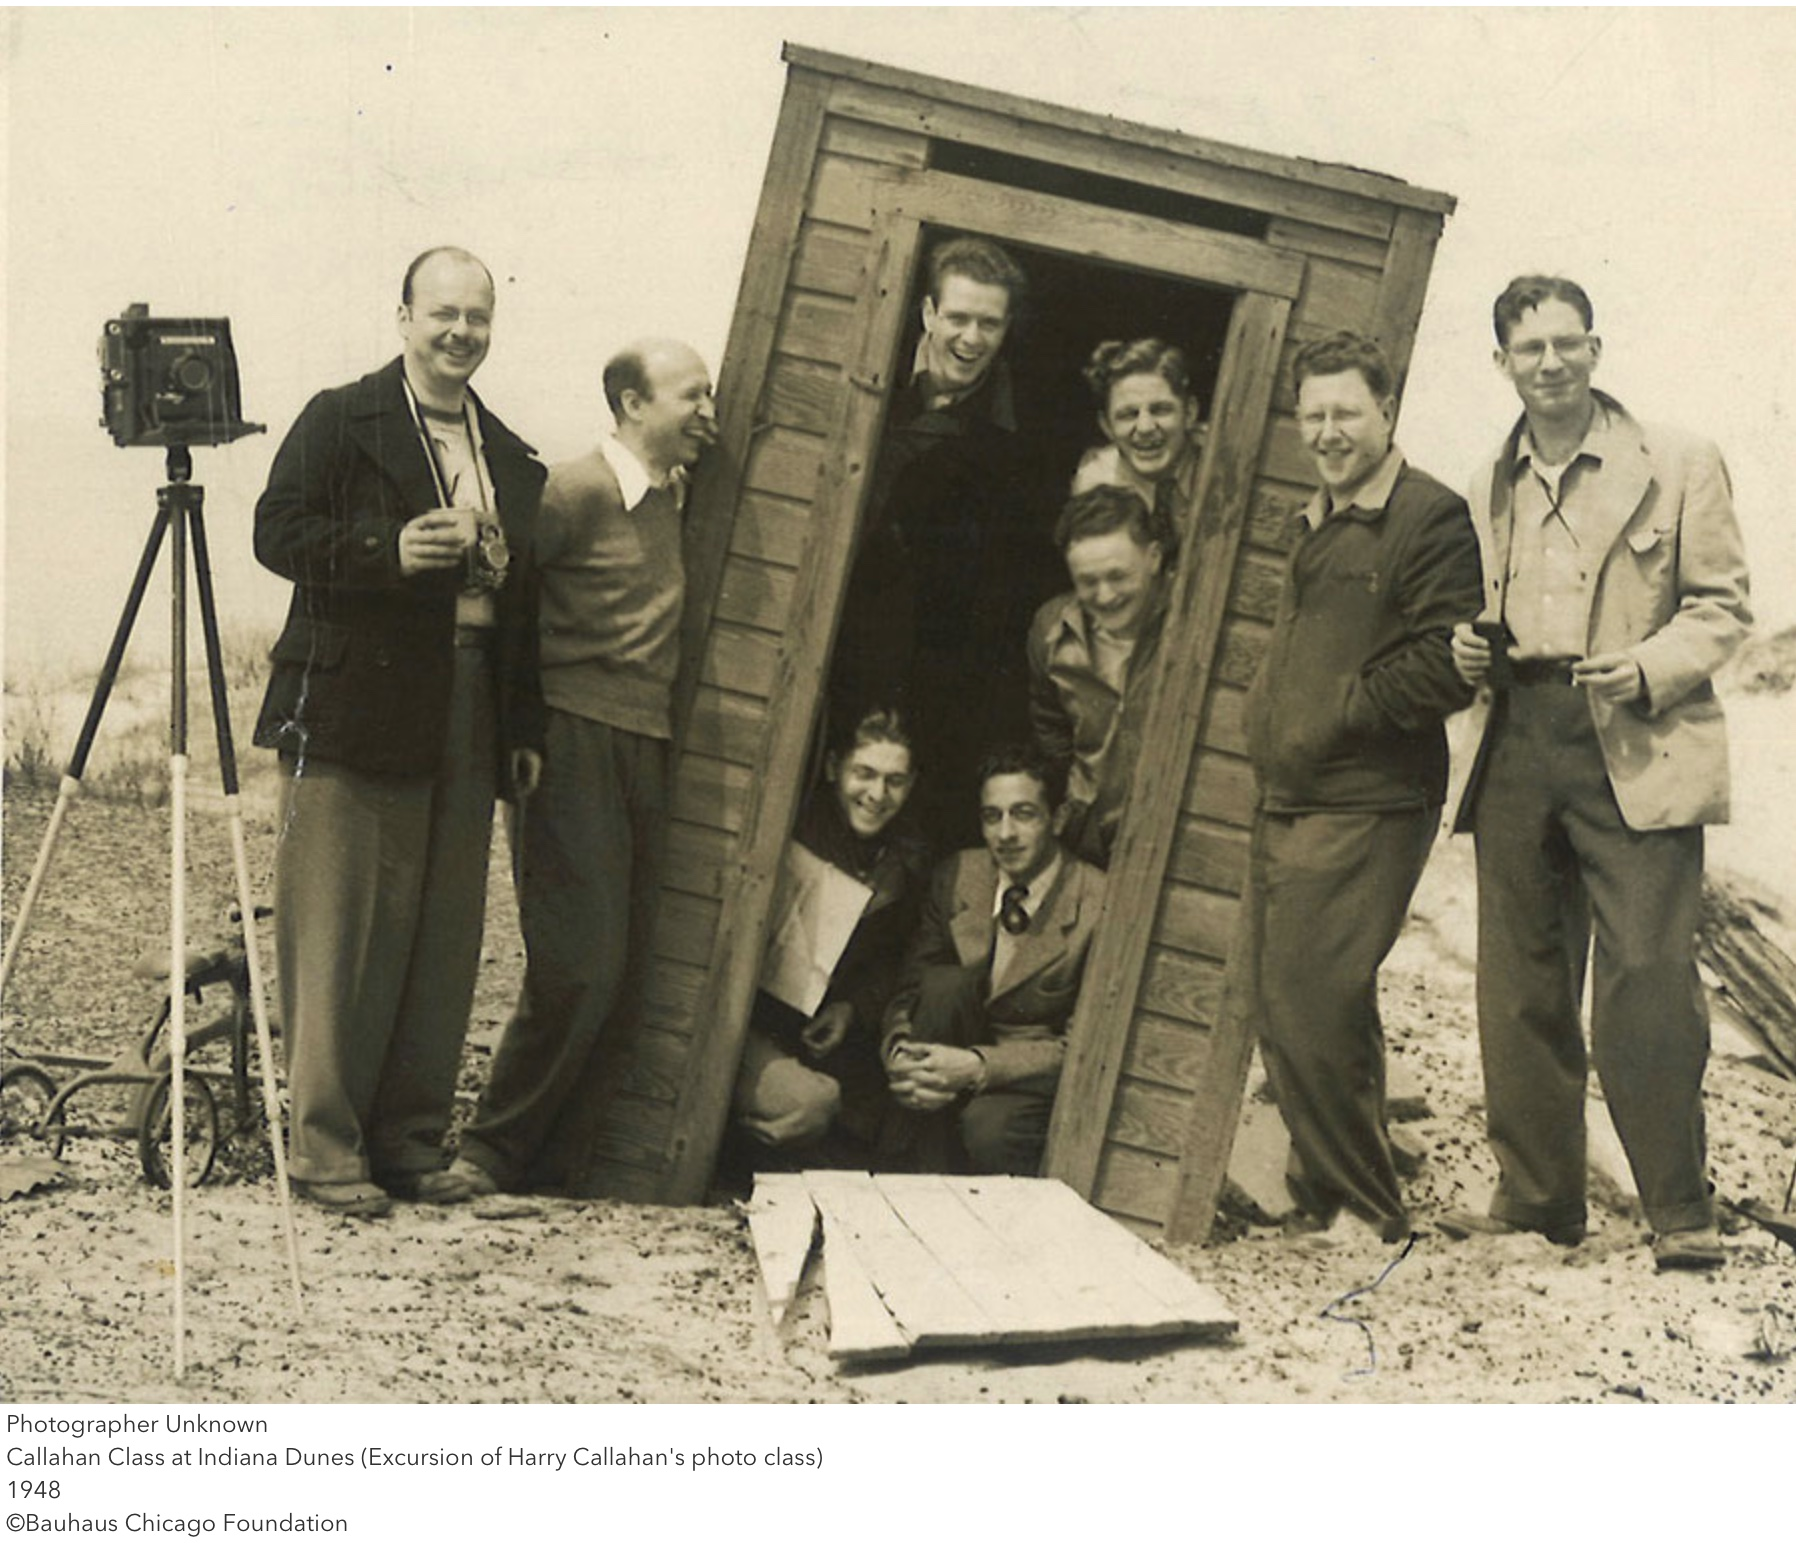 Group of people posing with camera